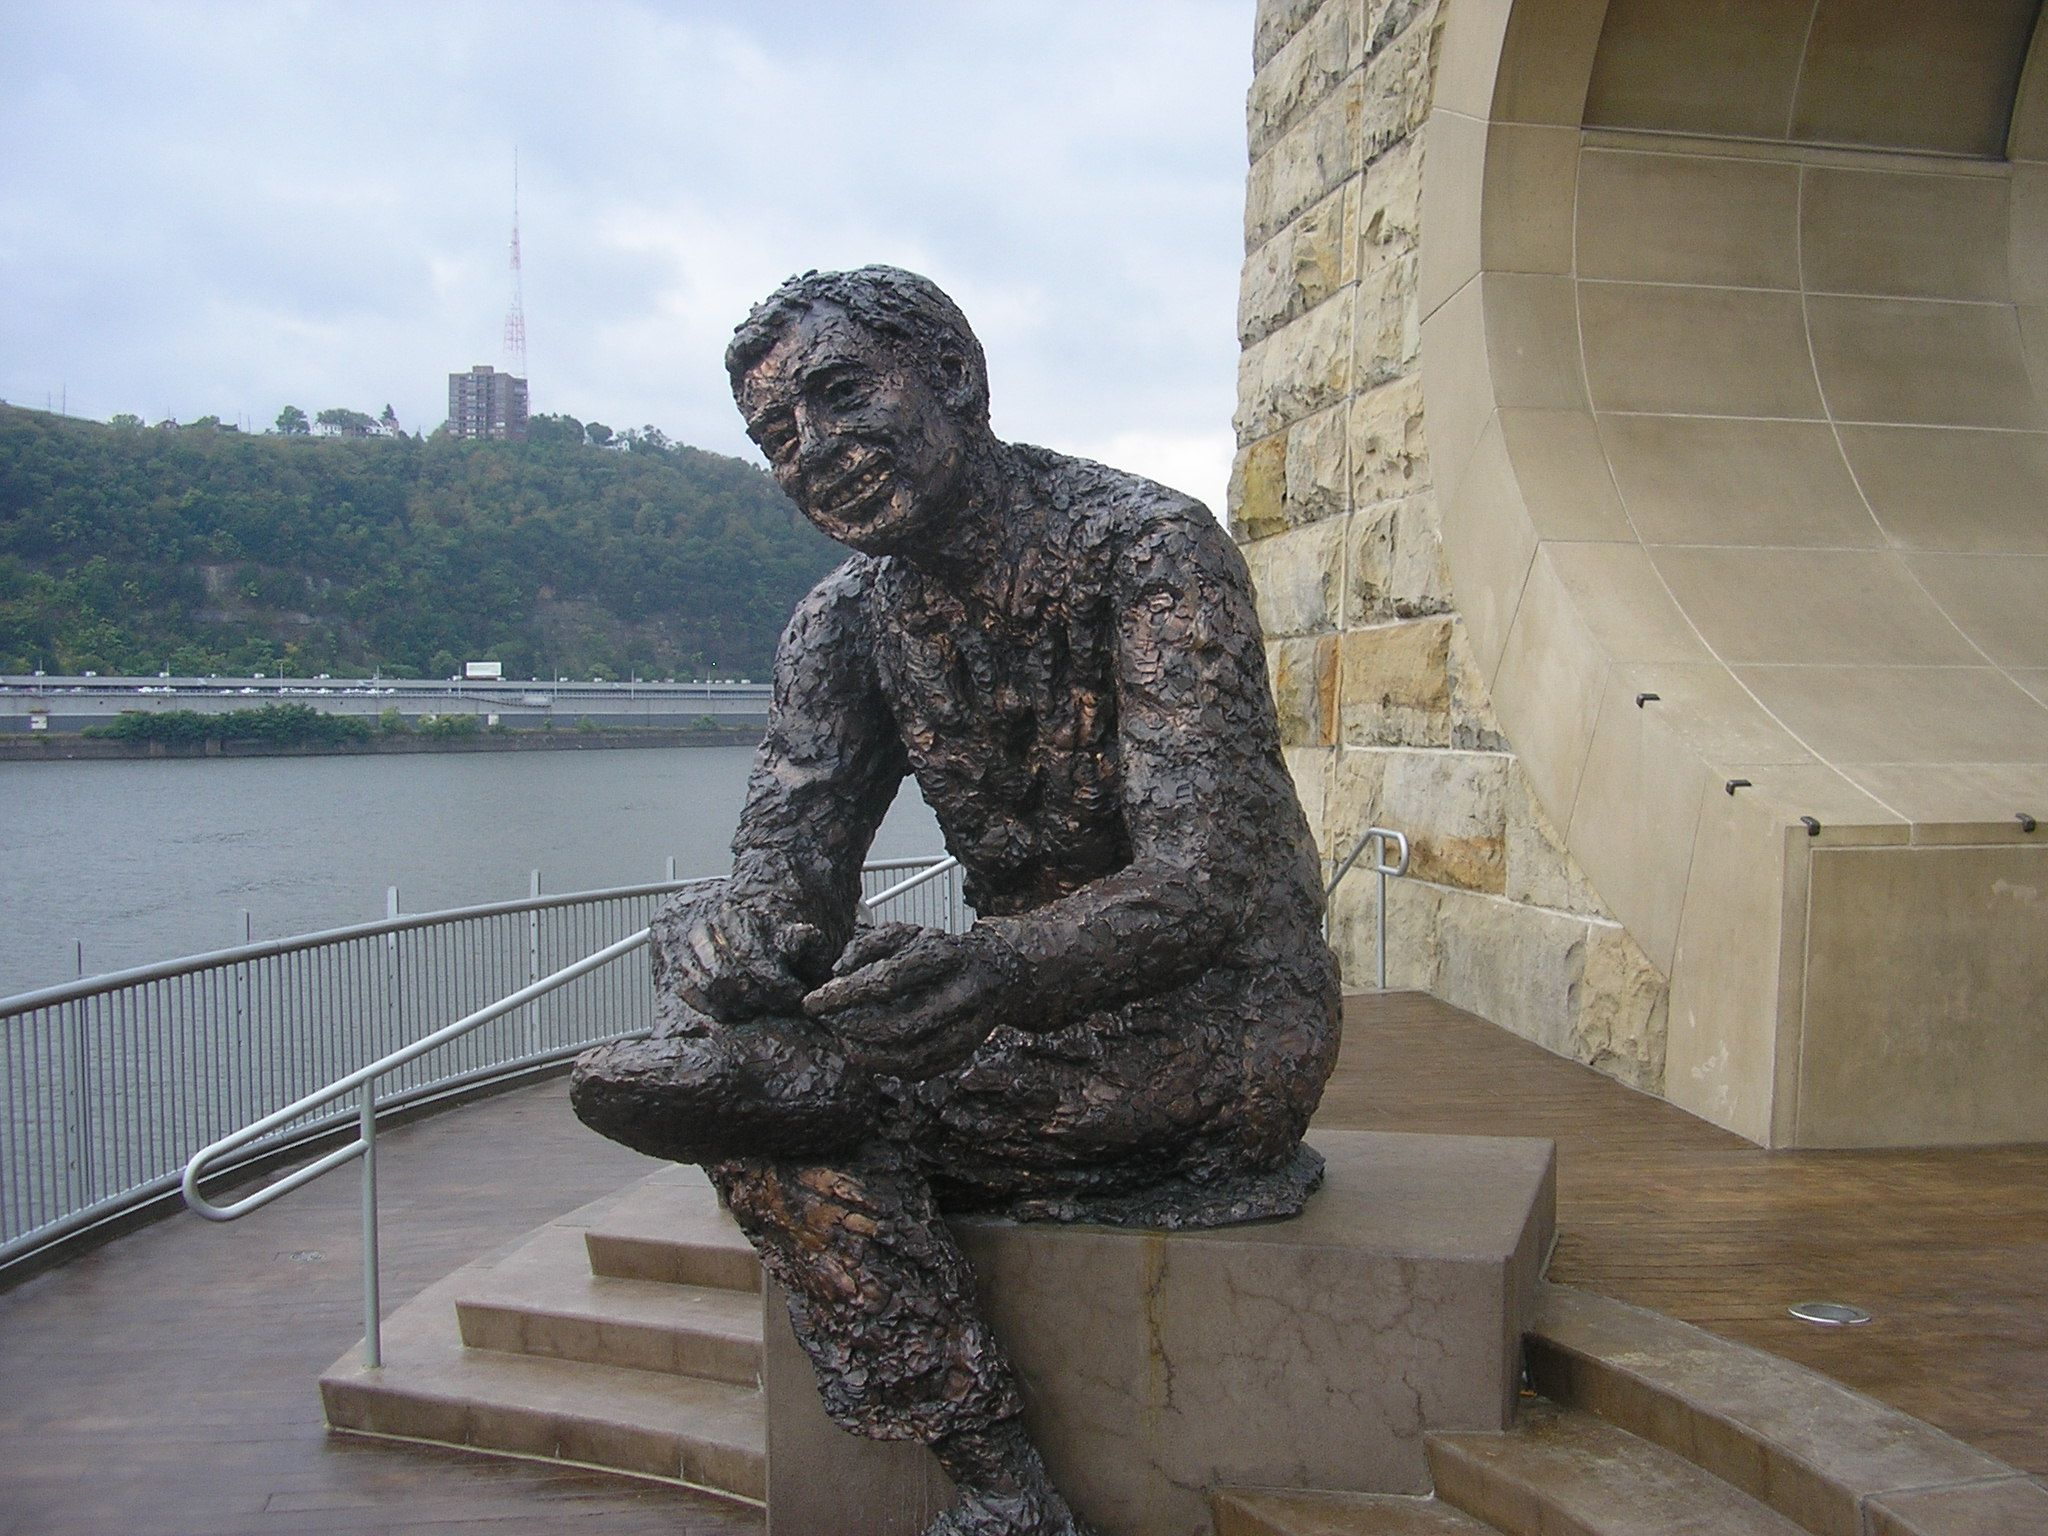 Tribute To Children The Mr Rogers Statue Old Manchester Bridge Pier North Shore Riverfront Park Art Rooney Ave Pittsburgh Pa Riverfront Statue